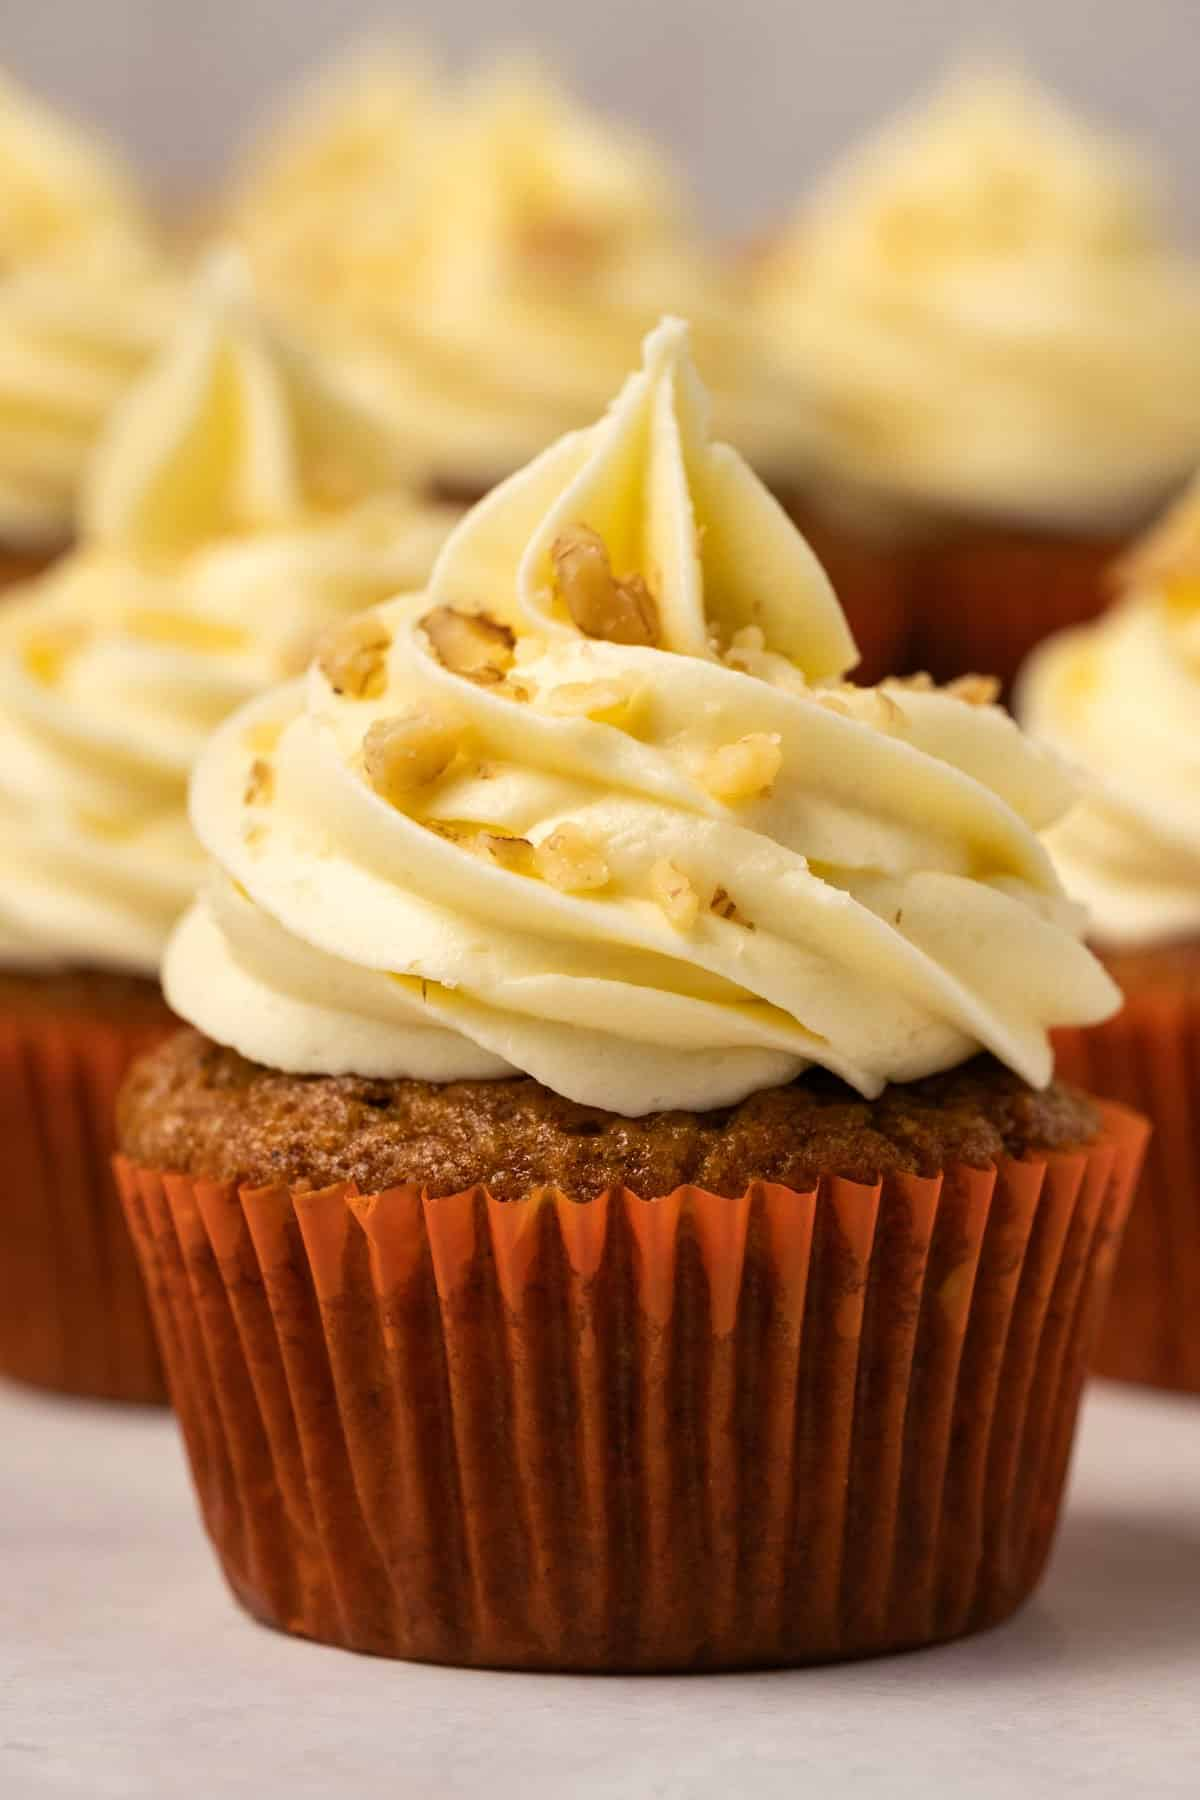 Carrot cake cupcakes topped with cream cheese frosting and chopped walnuts.